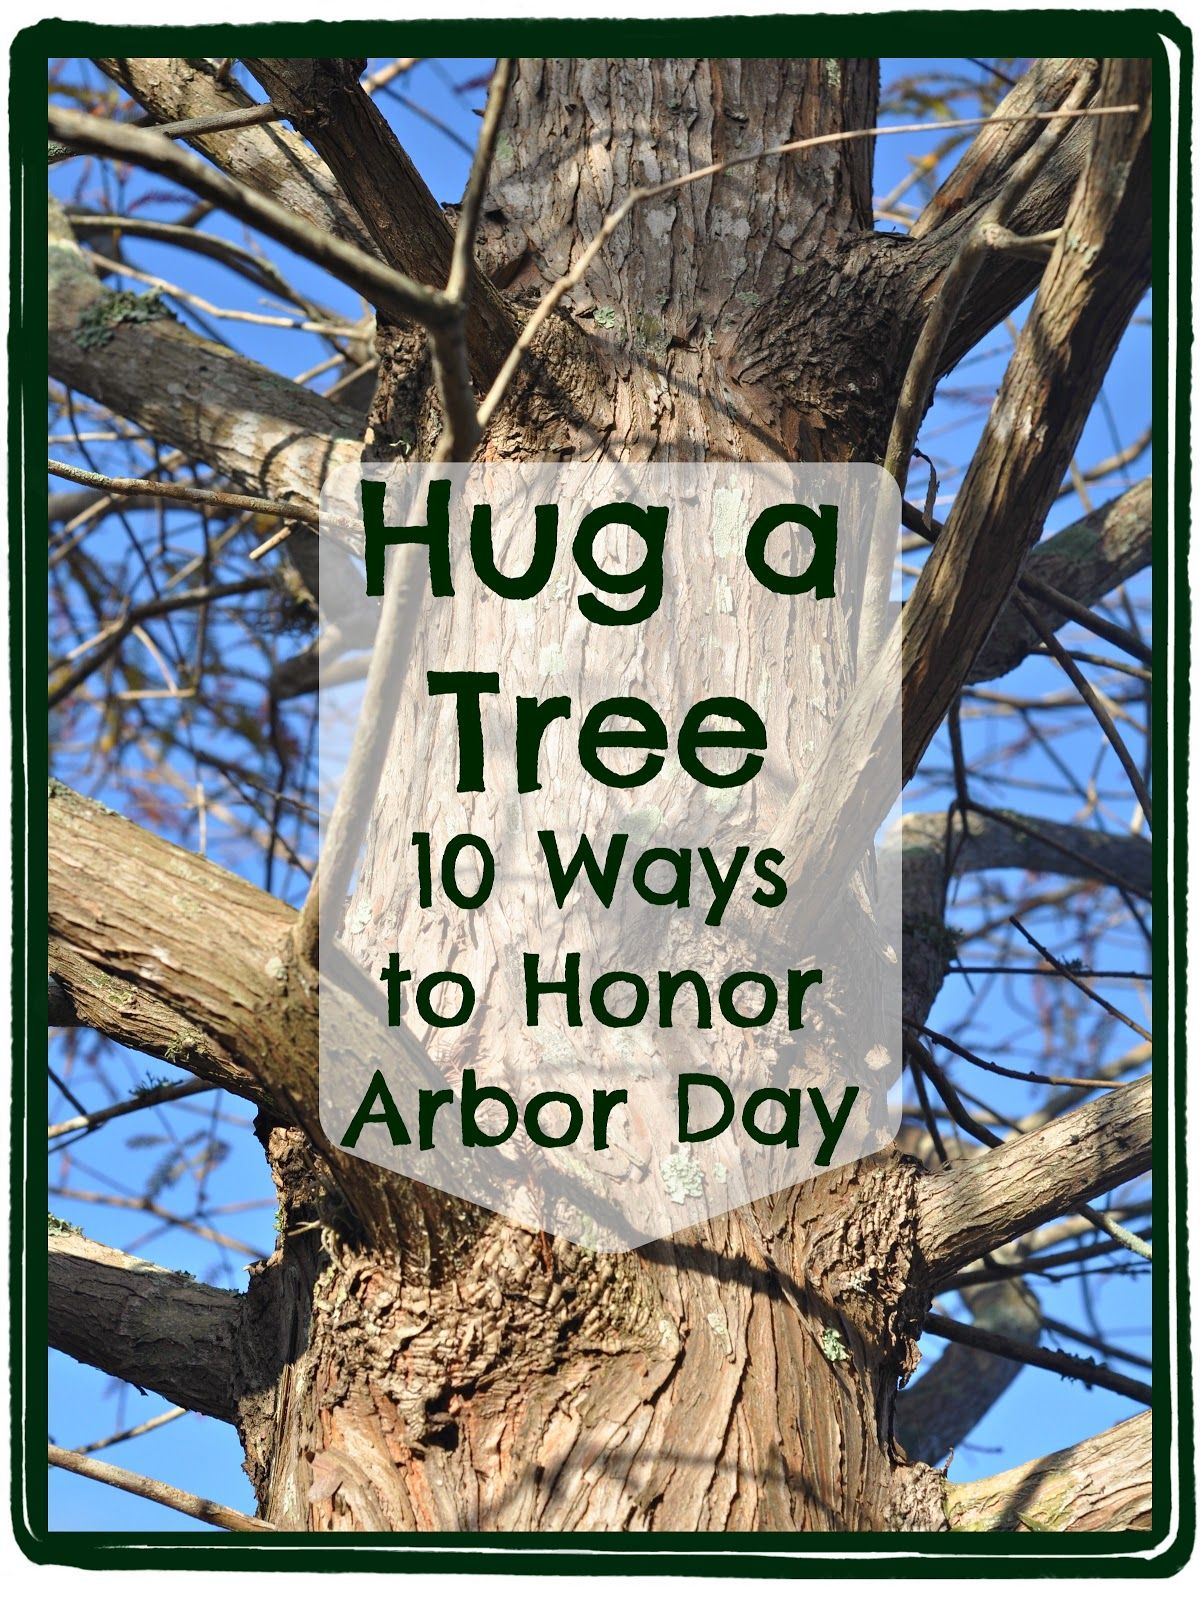 It's National Arbor Day, a special day set aside for tree